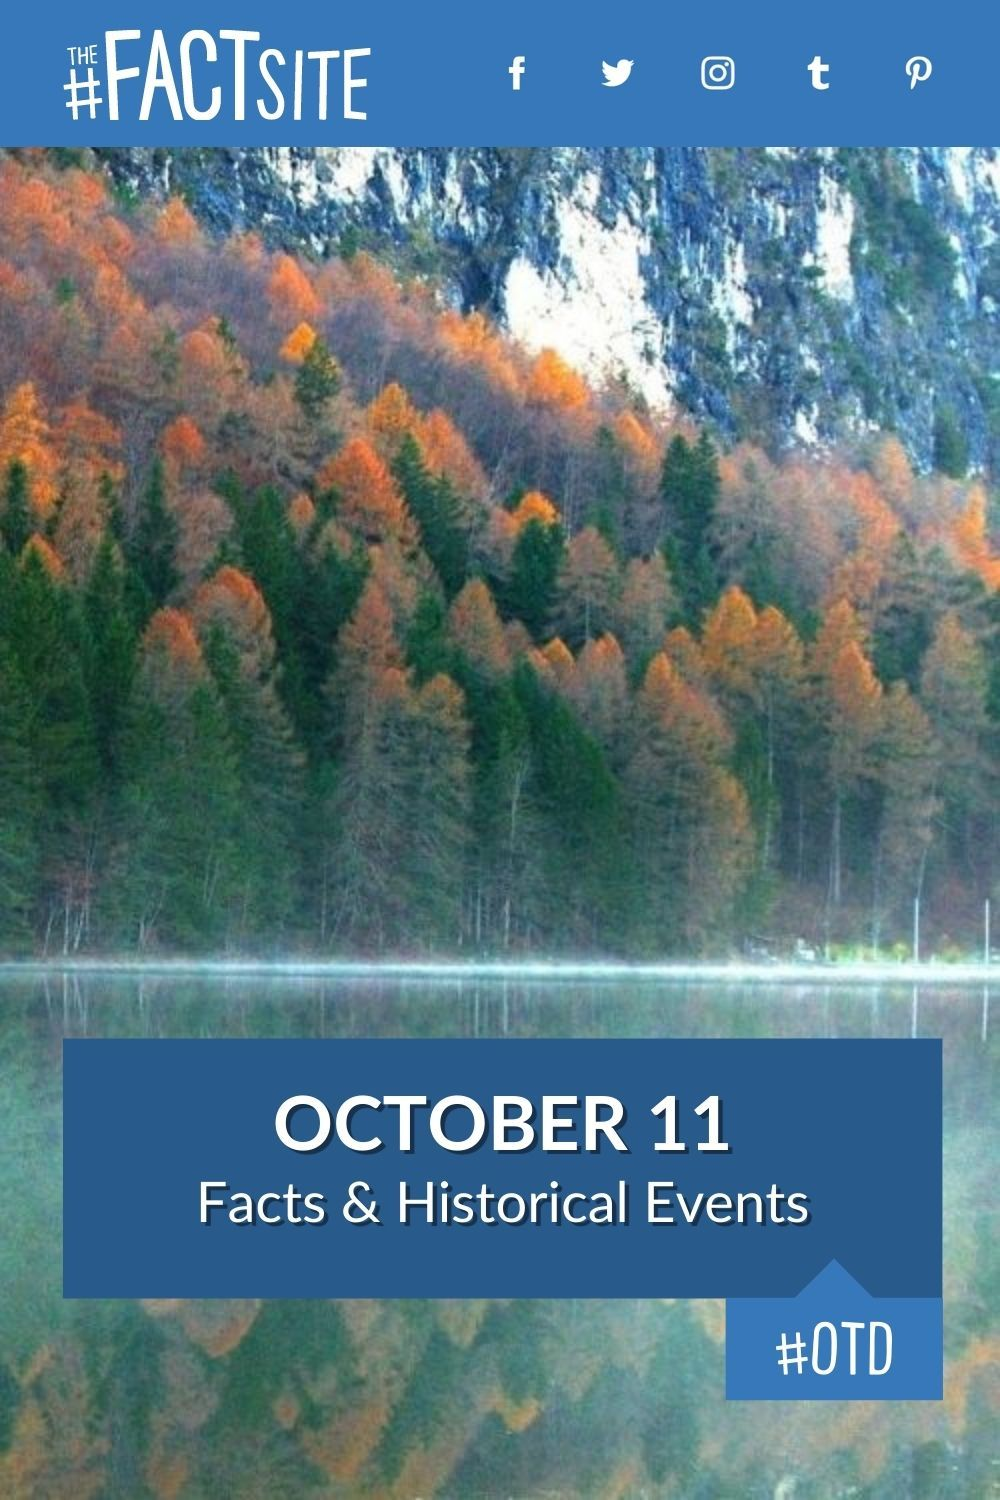 Facts & Historic Events That Happened on October 11